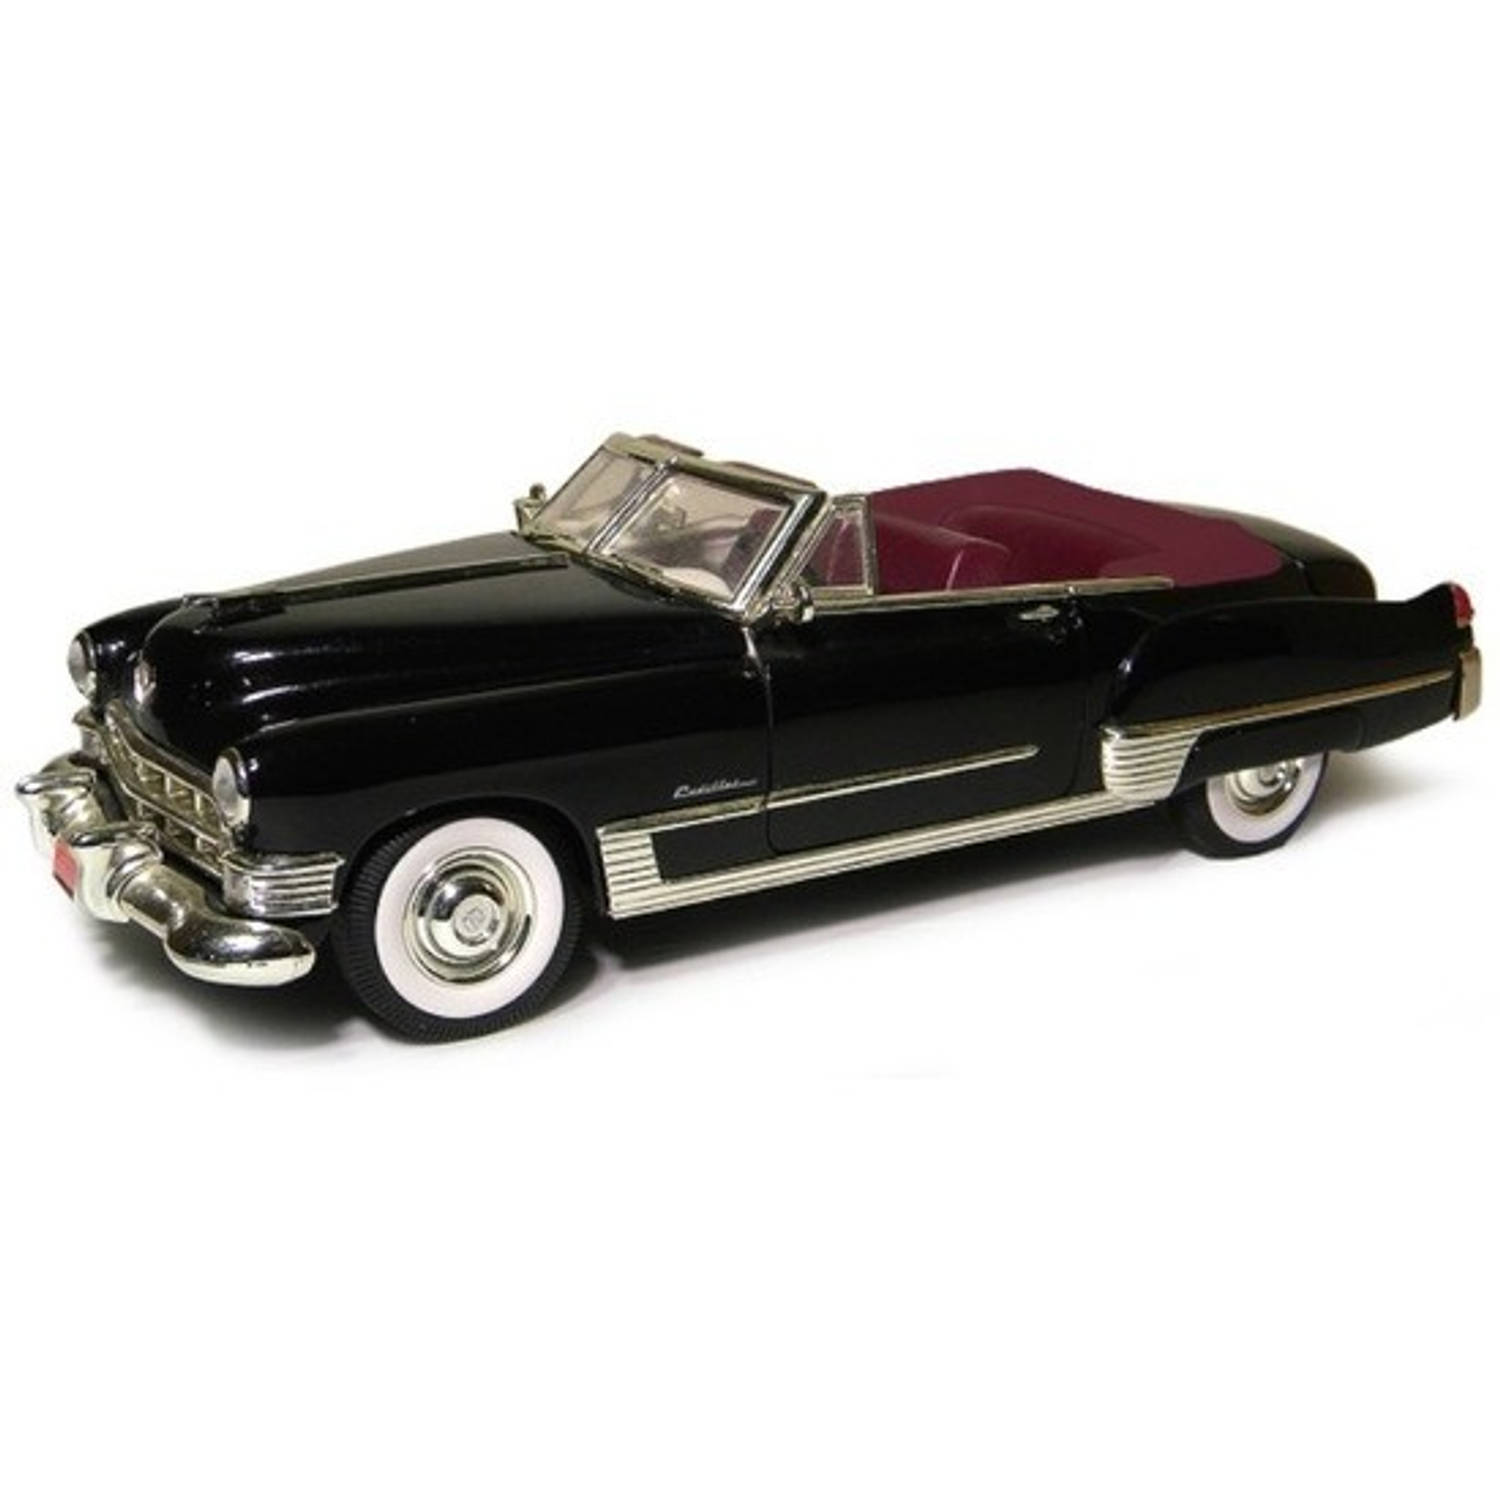 Modelauto Cadillac Series 62 Coupe DeVille cabriolet 1949 1:43 - speelgoed auto schaalmodel